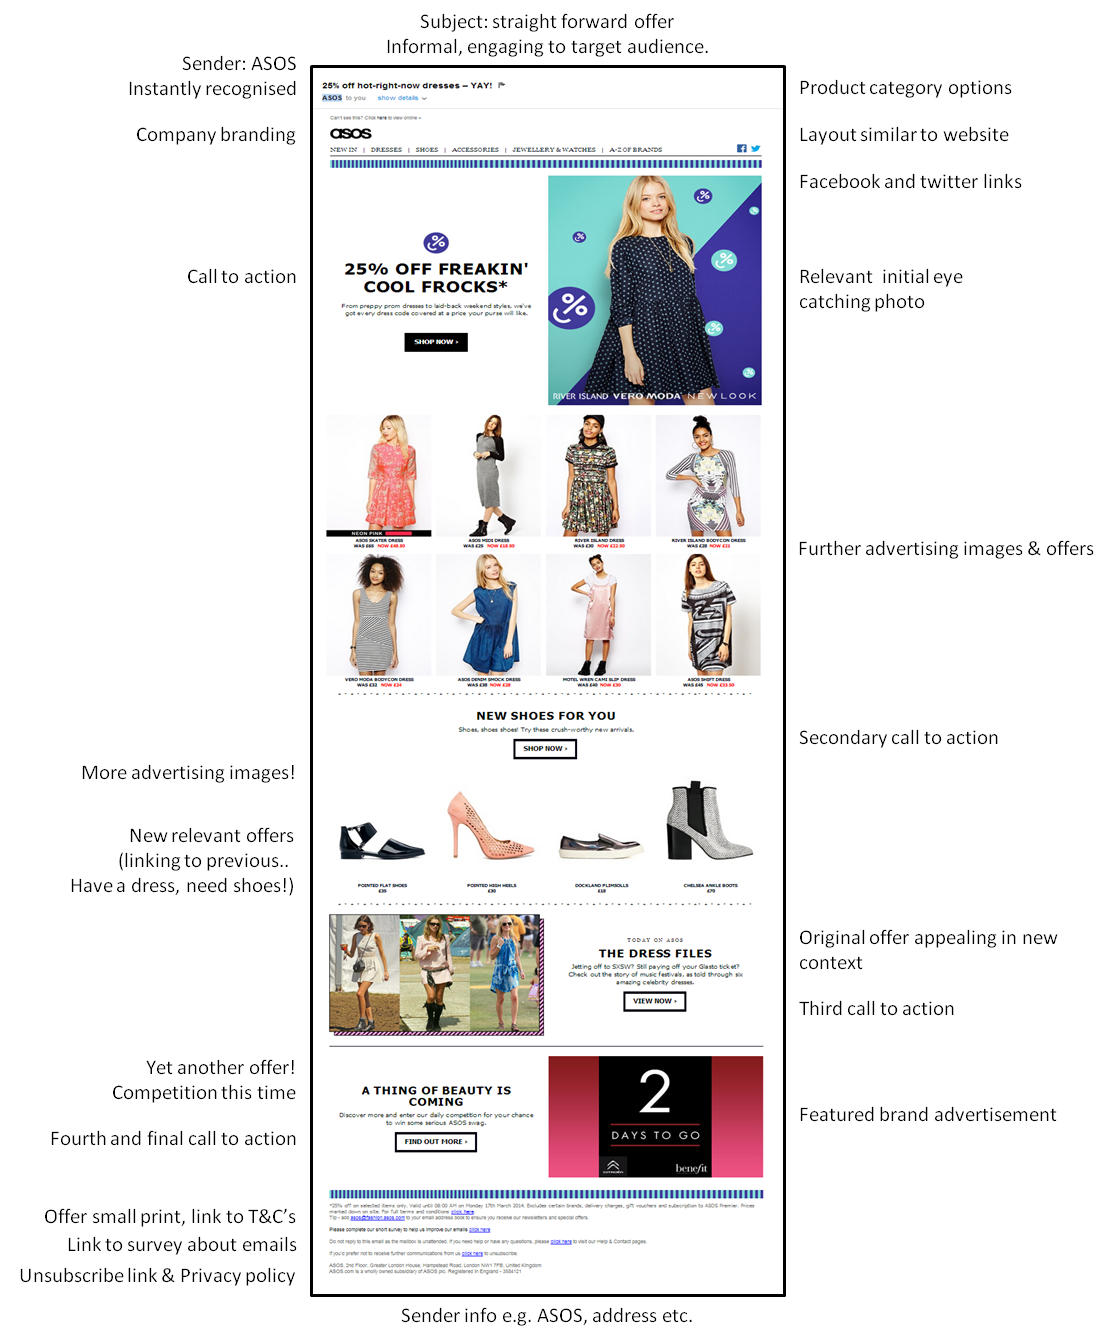 ASOS. Customer References and the Benefits of Online Shopping